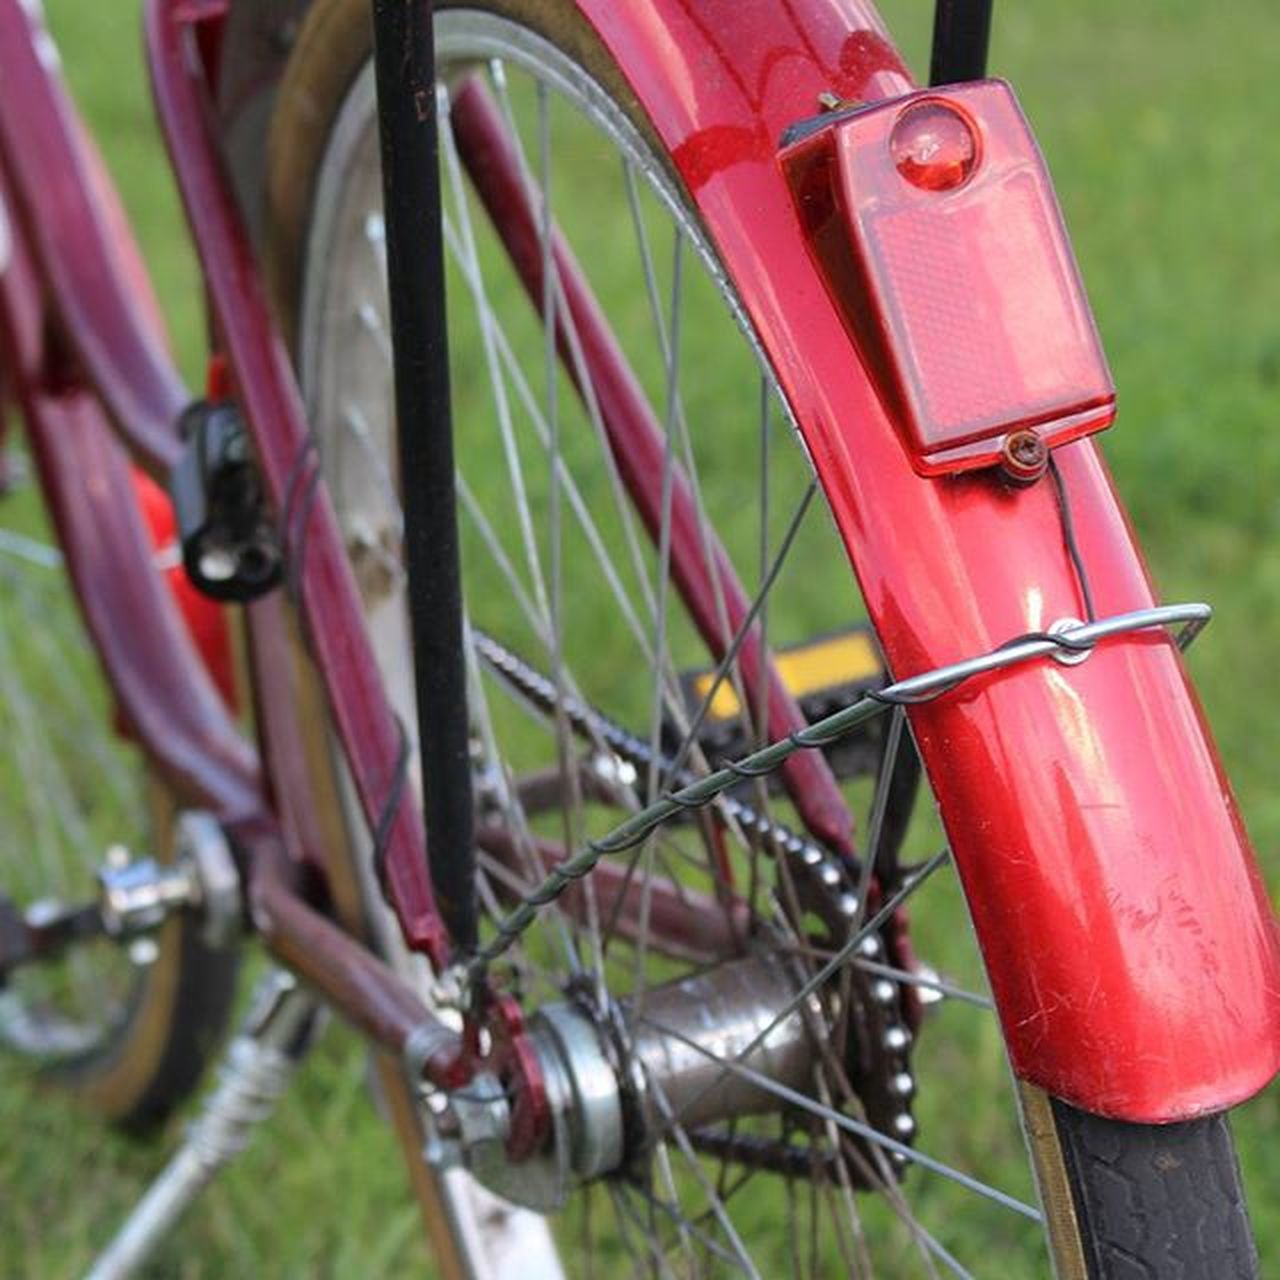 bicycle, transportation, red, stationary, outdoors, day, no people, mode of transport, grass, land vehicle, wheel, close-up